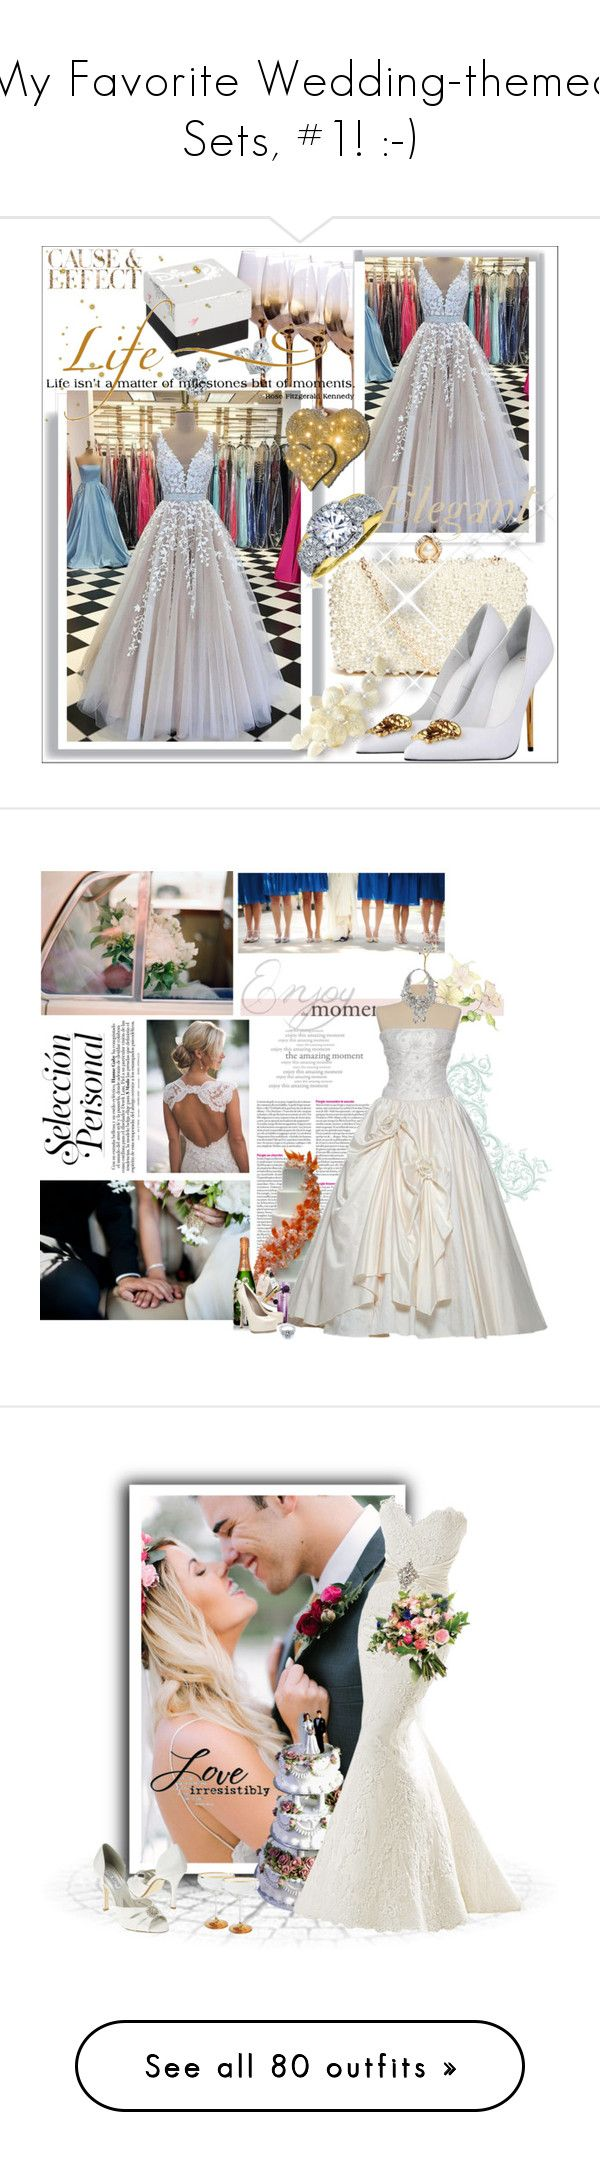 """My Favorite Wedding-themed Sets, #1! :-)"" by vahrendsen1988 ❤ liked on Polyvore featuring GUESS by Marciano, Versace, Disney, WALL, Envi:, Fergie, Lancôme, Perrier-JouÃ«t, Yves Saint Laurent and Tom Binns"